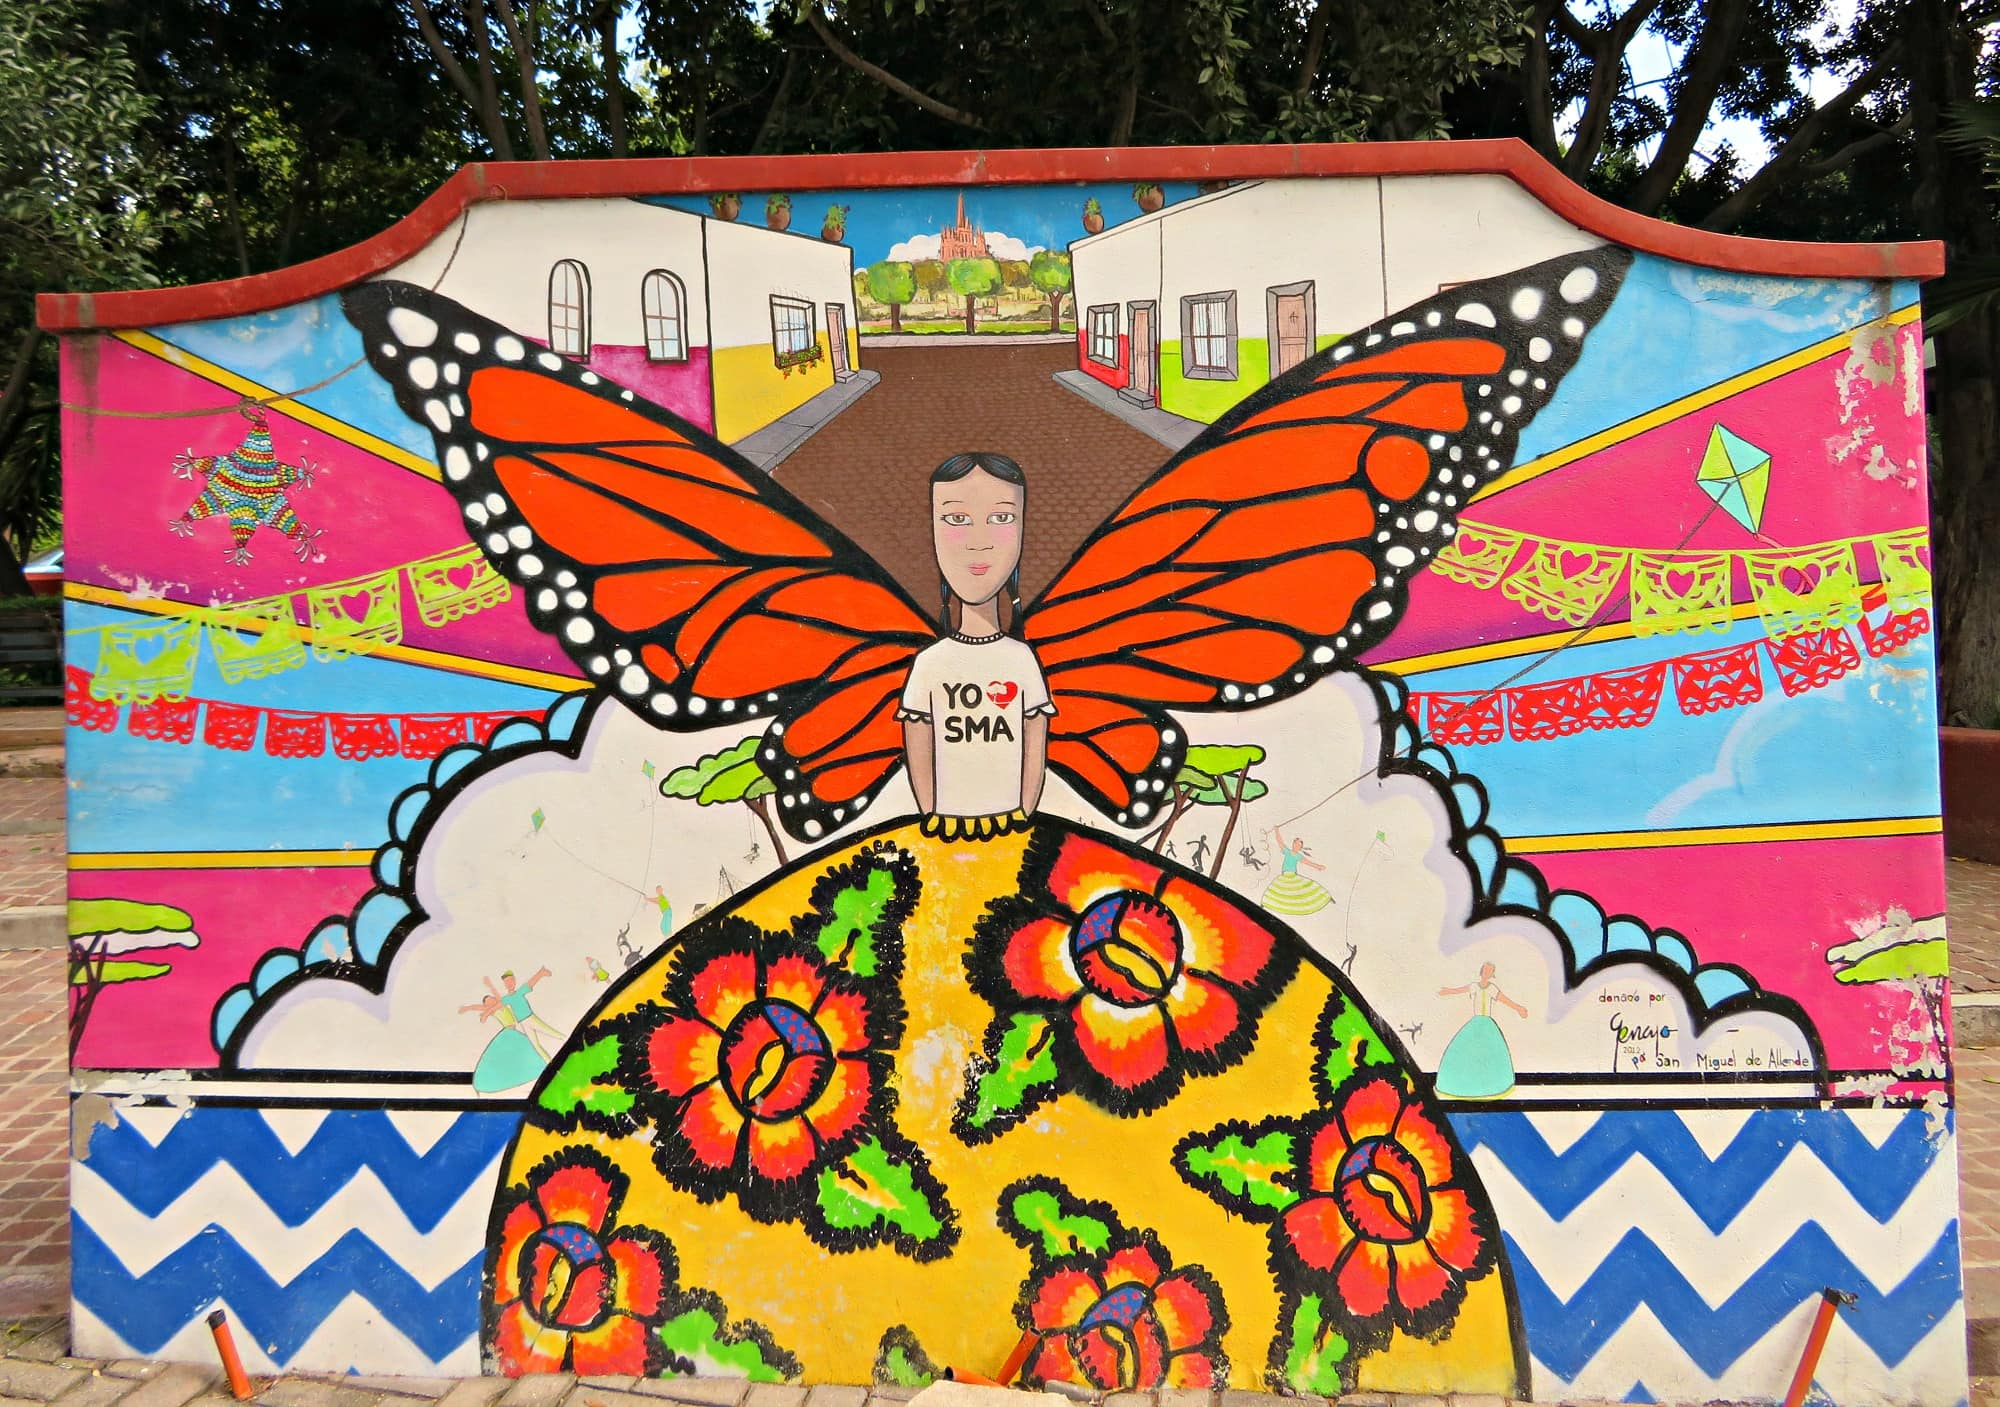 A colorful mural at Parque Juarez embodies the spirit of San Miguel de Allende with kids